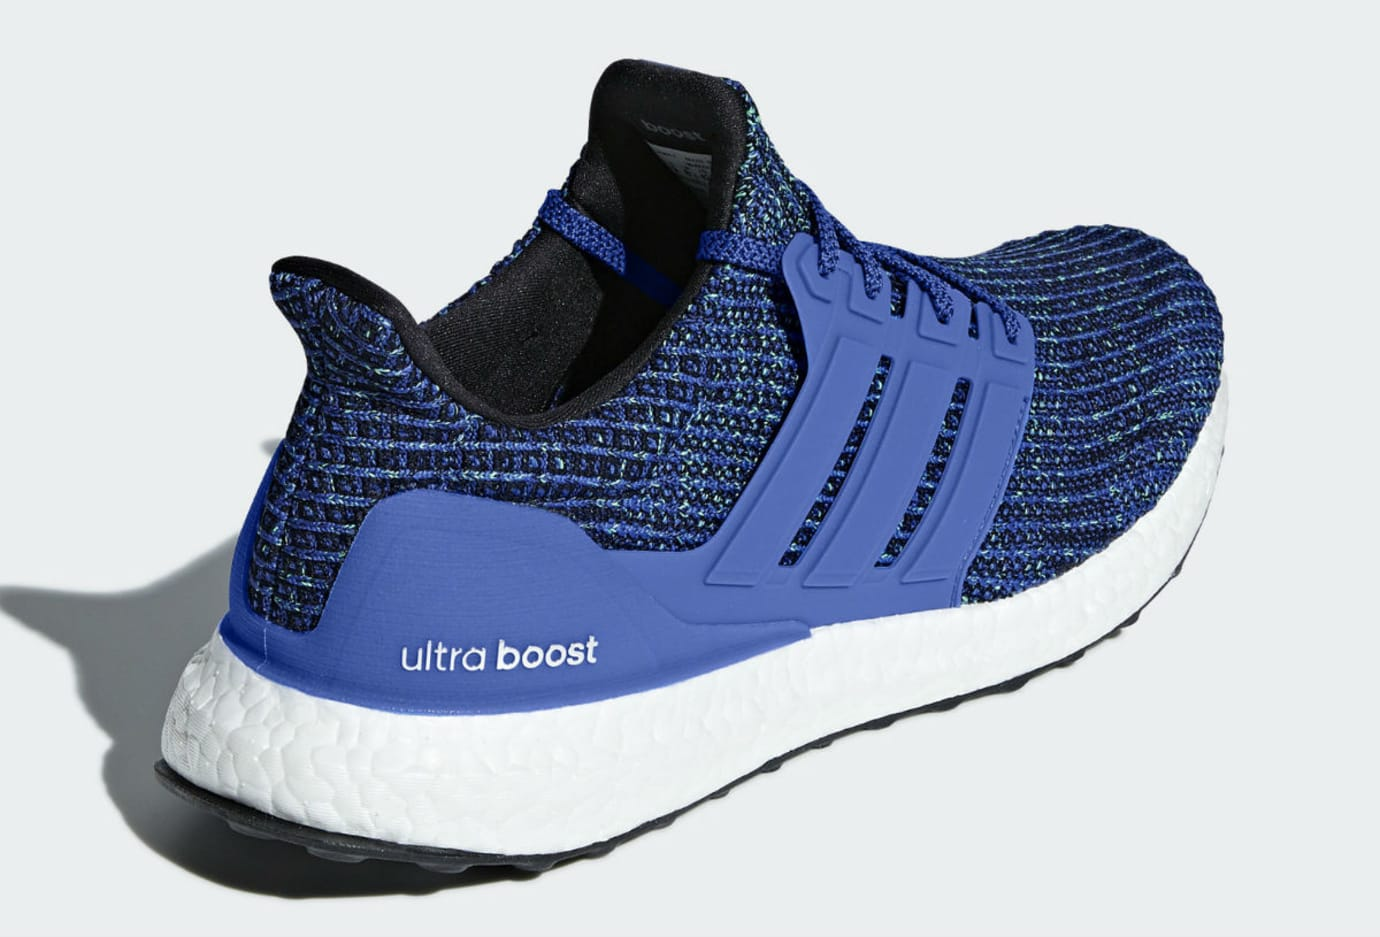 4c6beee35f5 Image via Adidas Adidas Ultra Boost 4.0 Hi Res Blue Release Date CM8112 Back